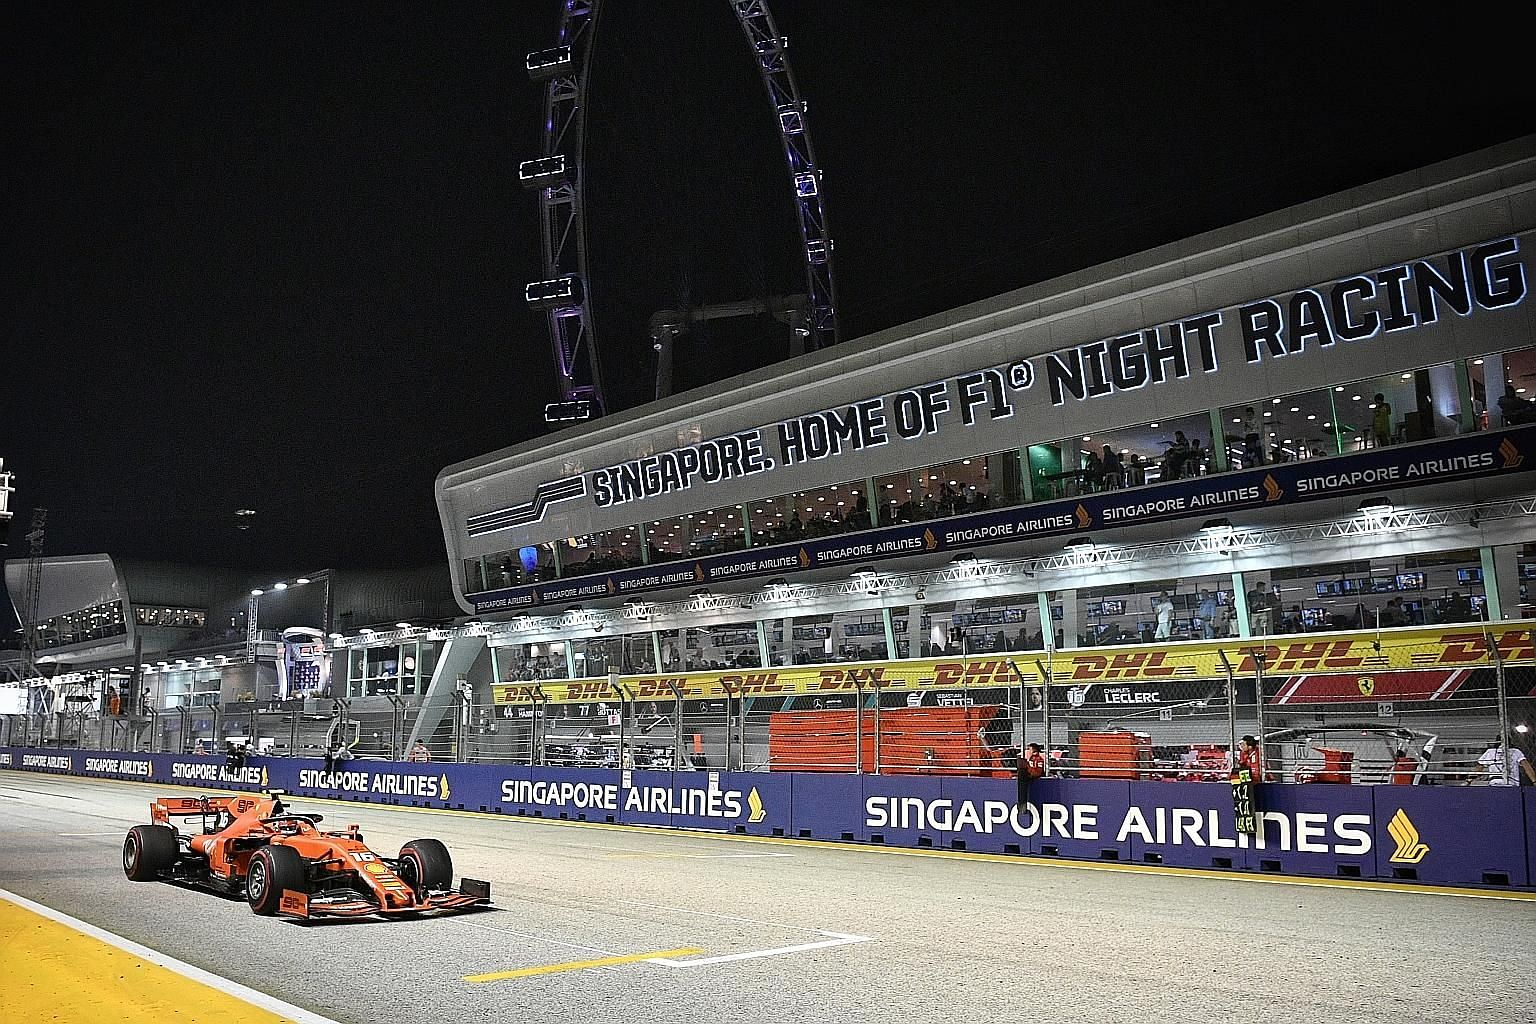 Charles Leclerc burning rubber on the Marina Bay Street Circuit during the 12th Singapore Grand Prix on Sunday. Singapore's current deal to host the night race runs till 2021. ST PHOTO: ARIFFIN JAMAR